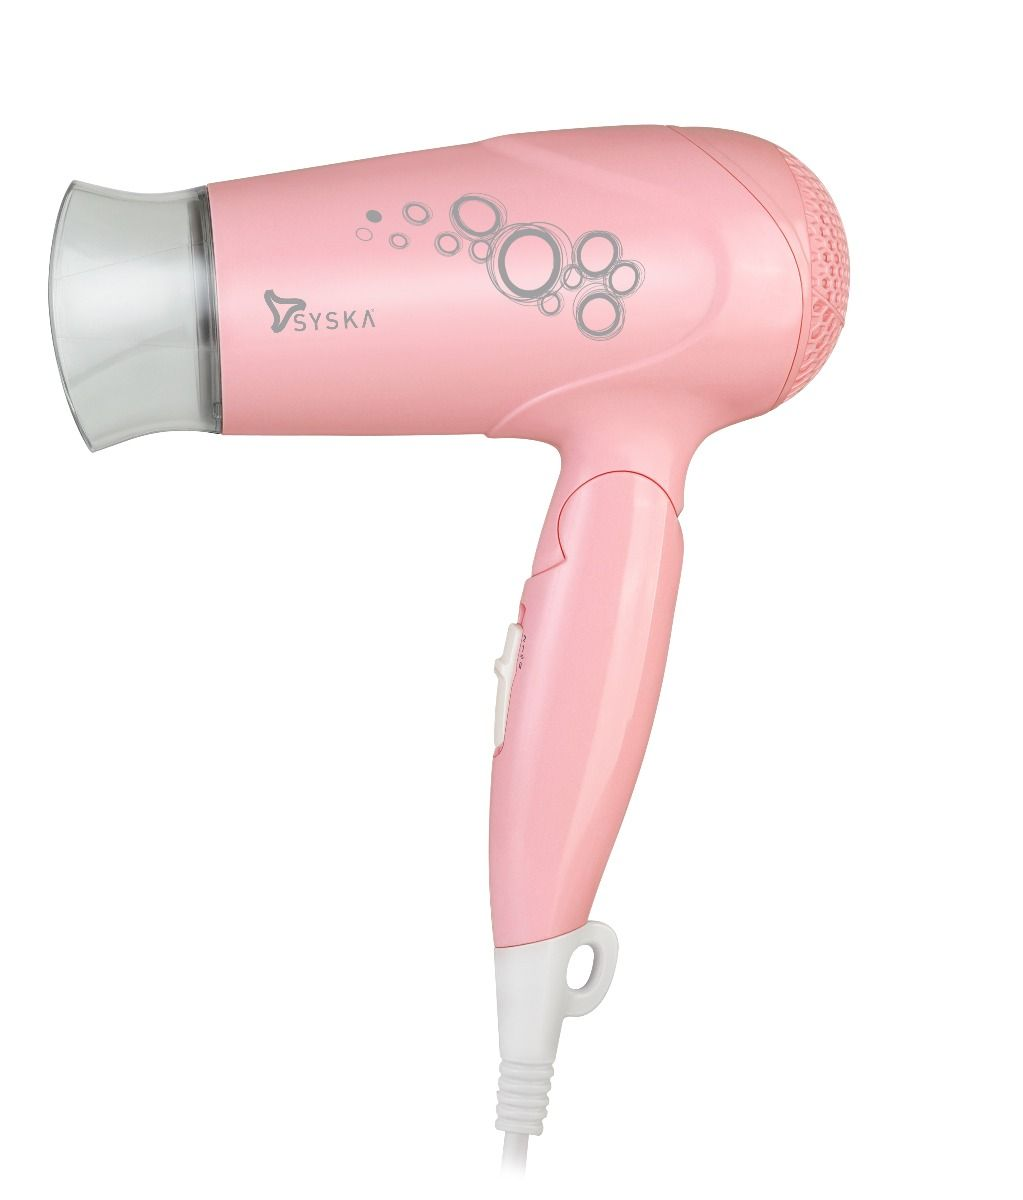 SYSKA HD1620 Hair Dyer with Foldable handle, Detachable Concentrator-(Power 1200 W)-Pink